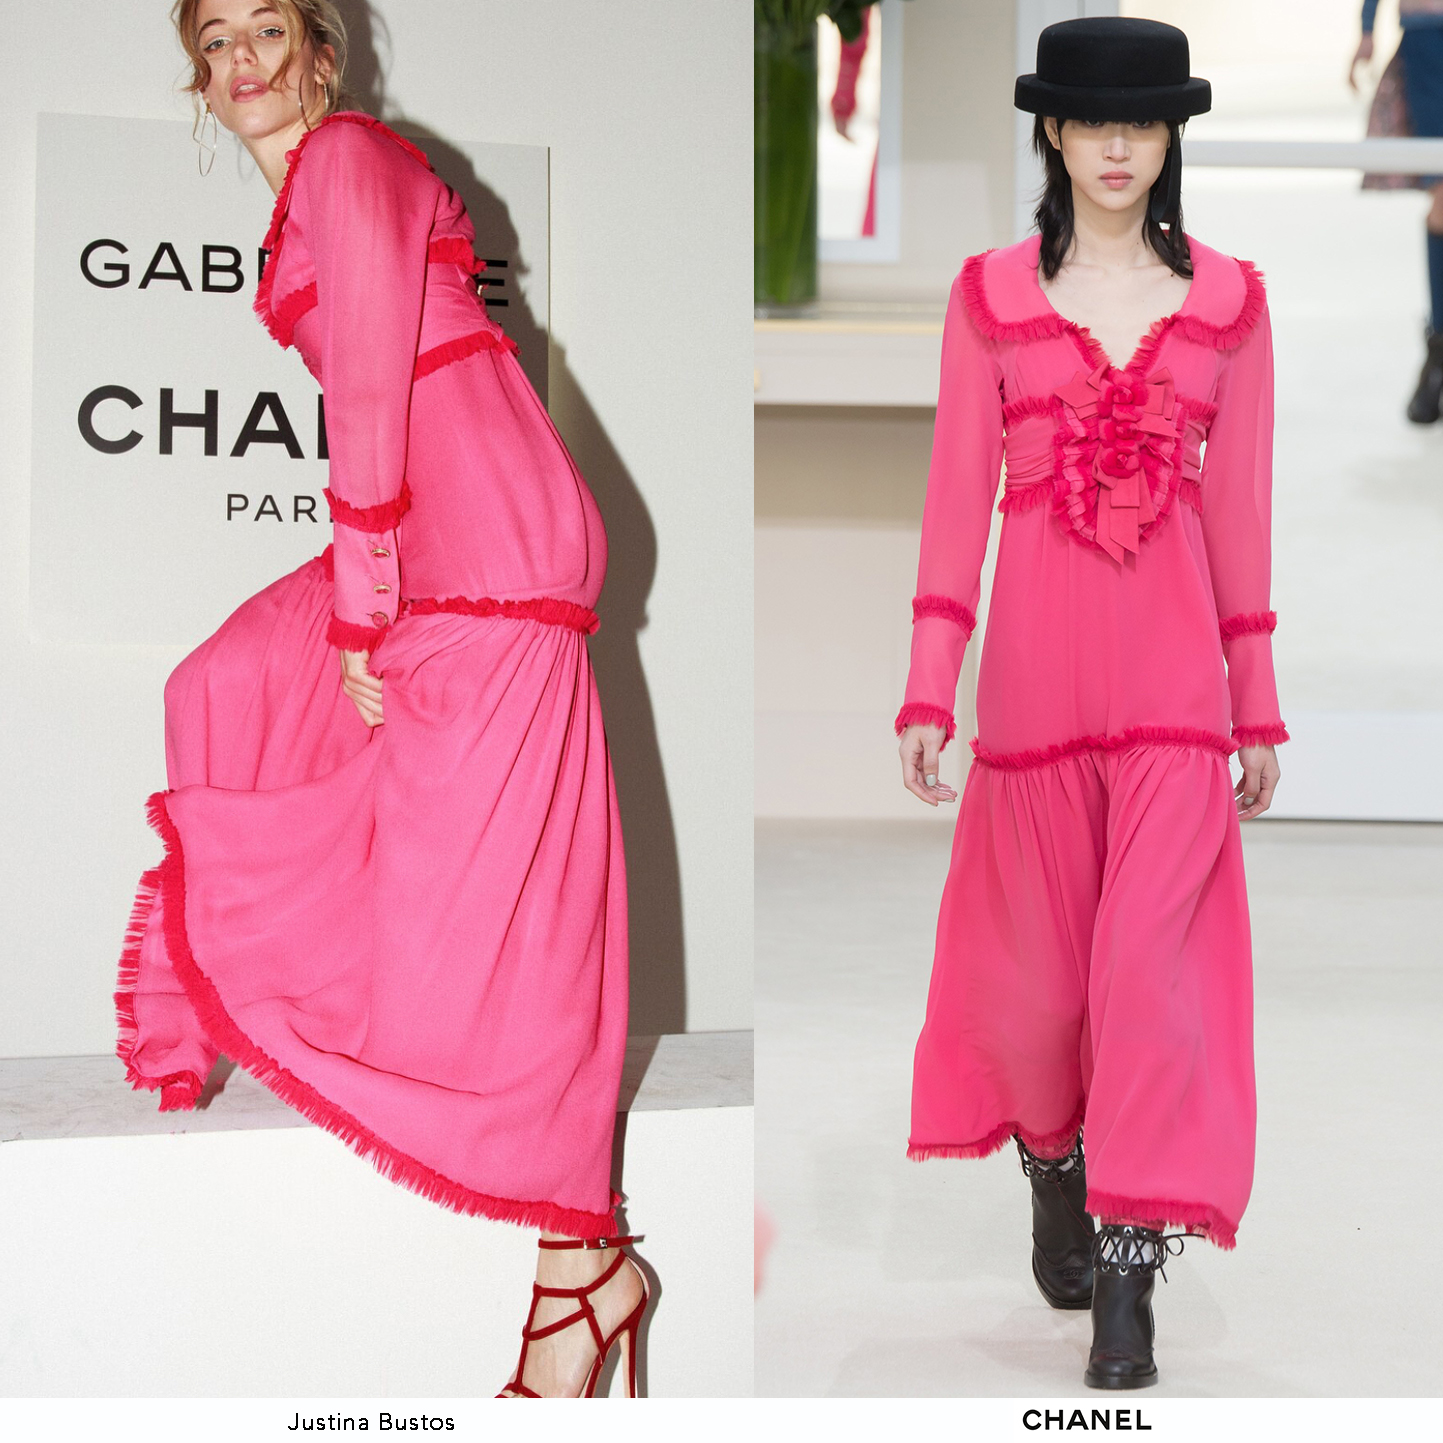 Justina_Bustos_Chanel_Party_Argentina_Fucsia_Long_Sleeve_Dress_Chanel_Fall_2016_Invierno_Looks.jpg